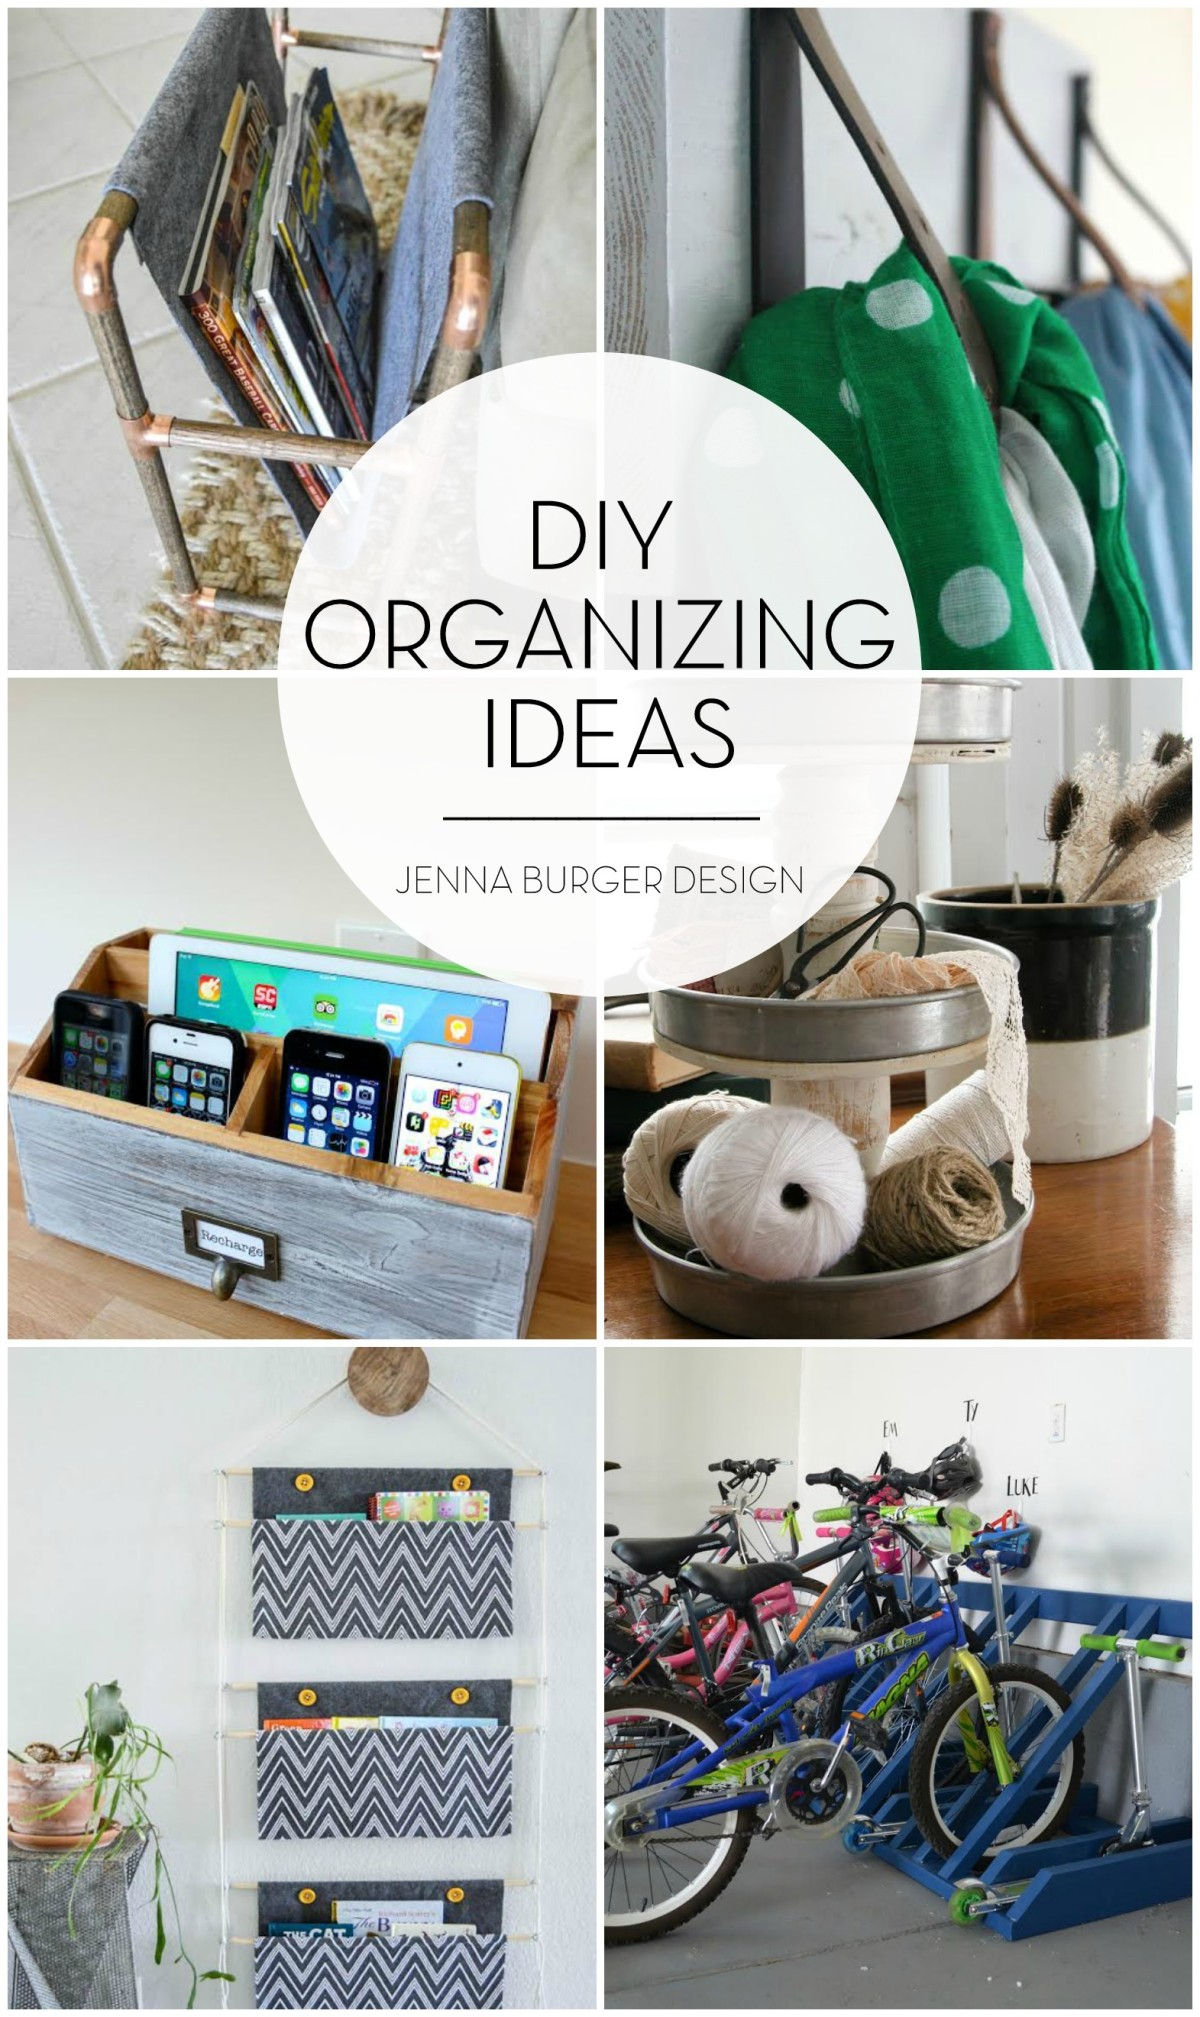 DIY Organizing Ideas - Jenna Burger